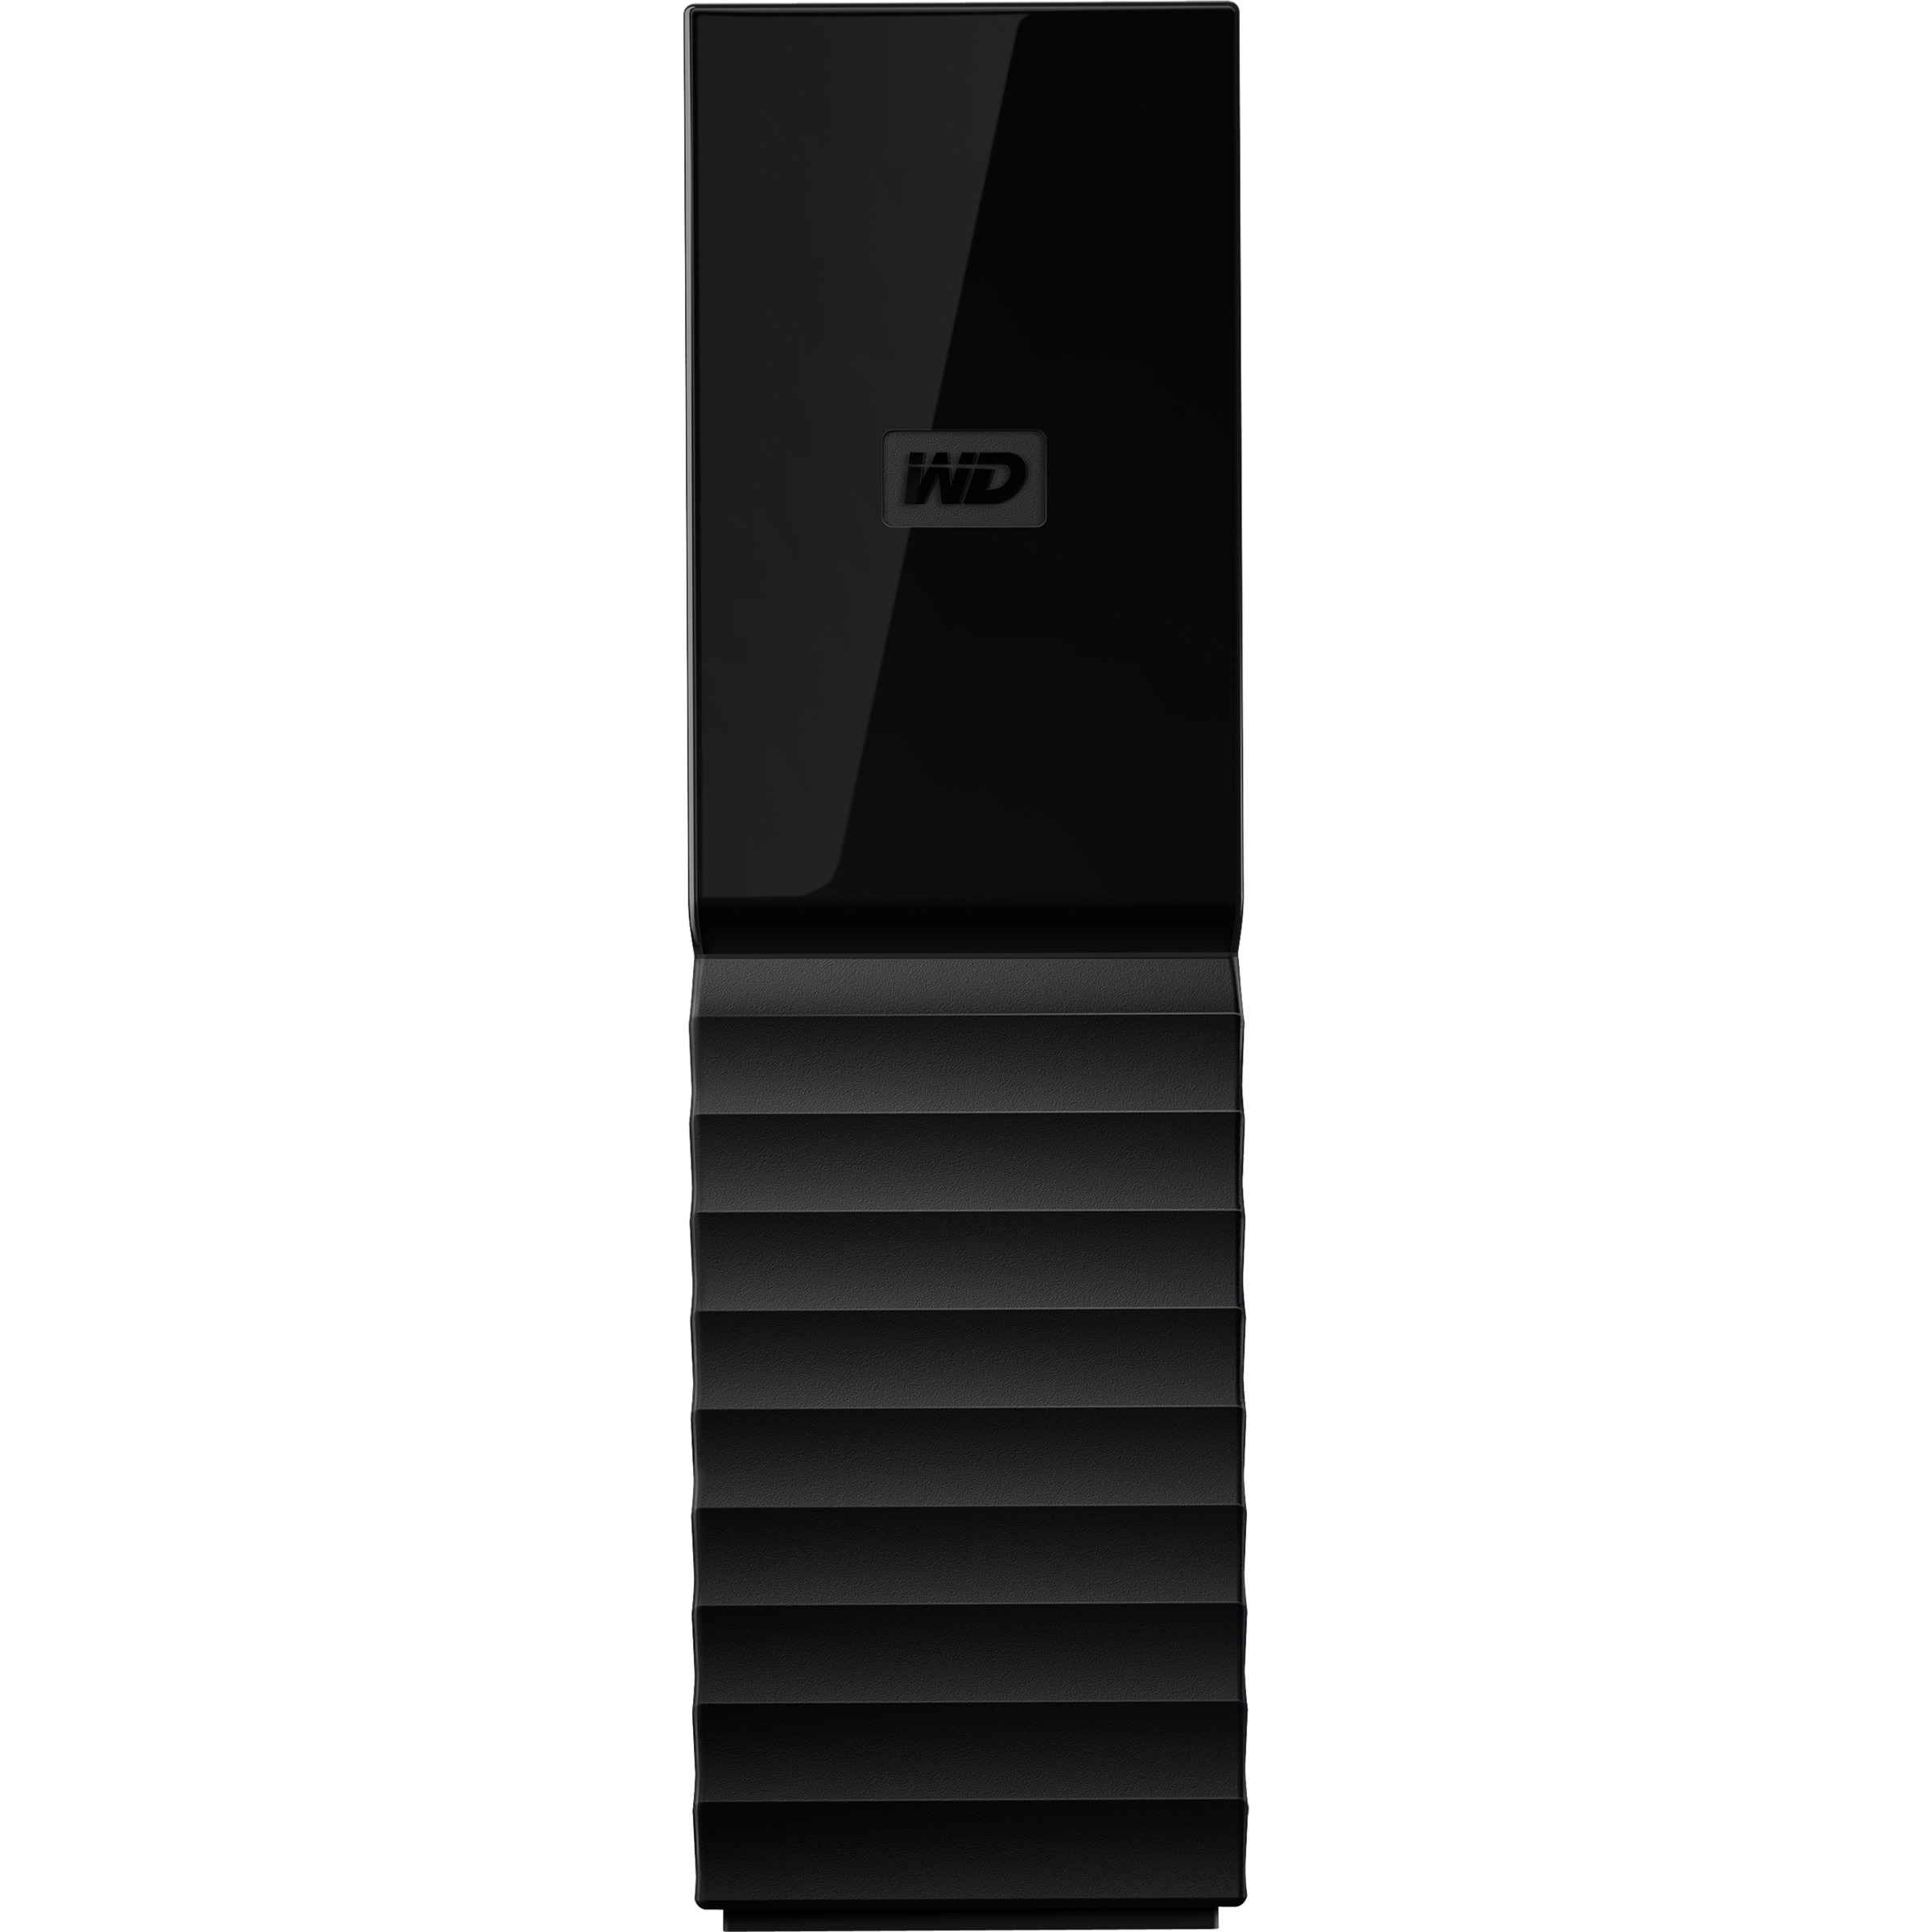 WD My Book 4TB USB 3.0 desktop hard drive with password protection and auto backup software - USB 3.0 - Desktop - Black - Retail - 256-bit Encryption Standard 1